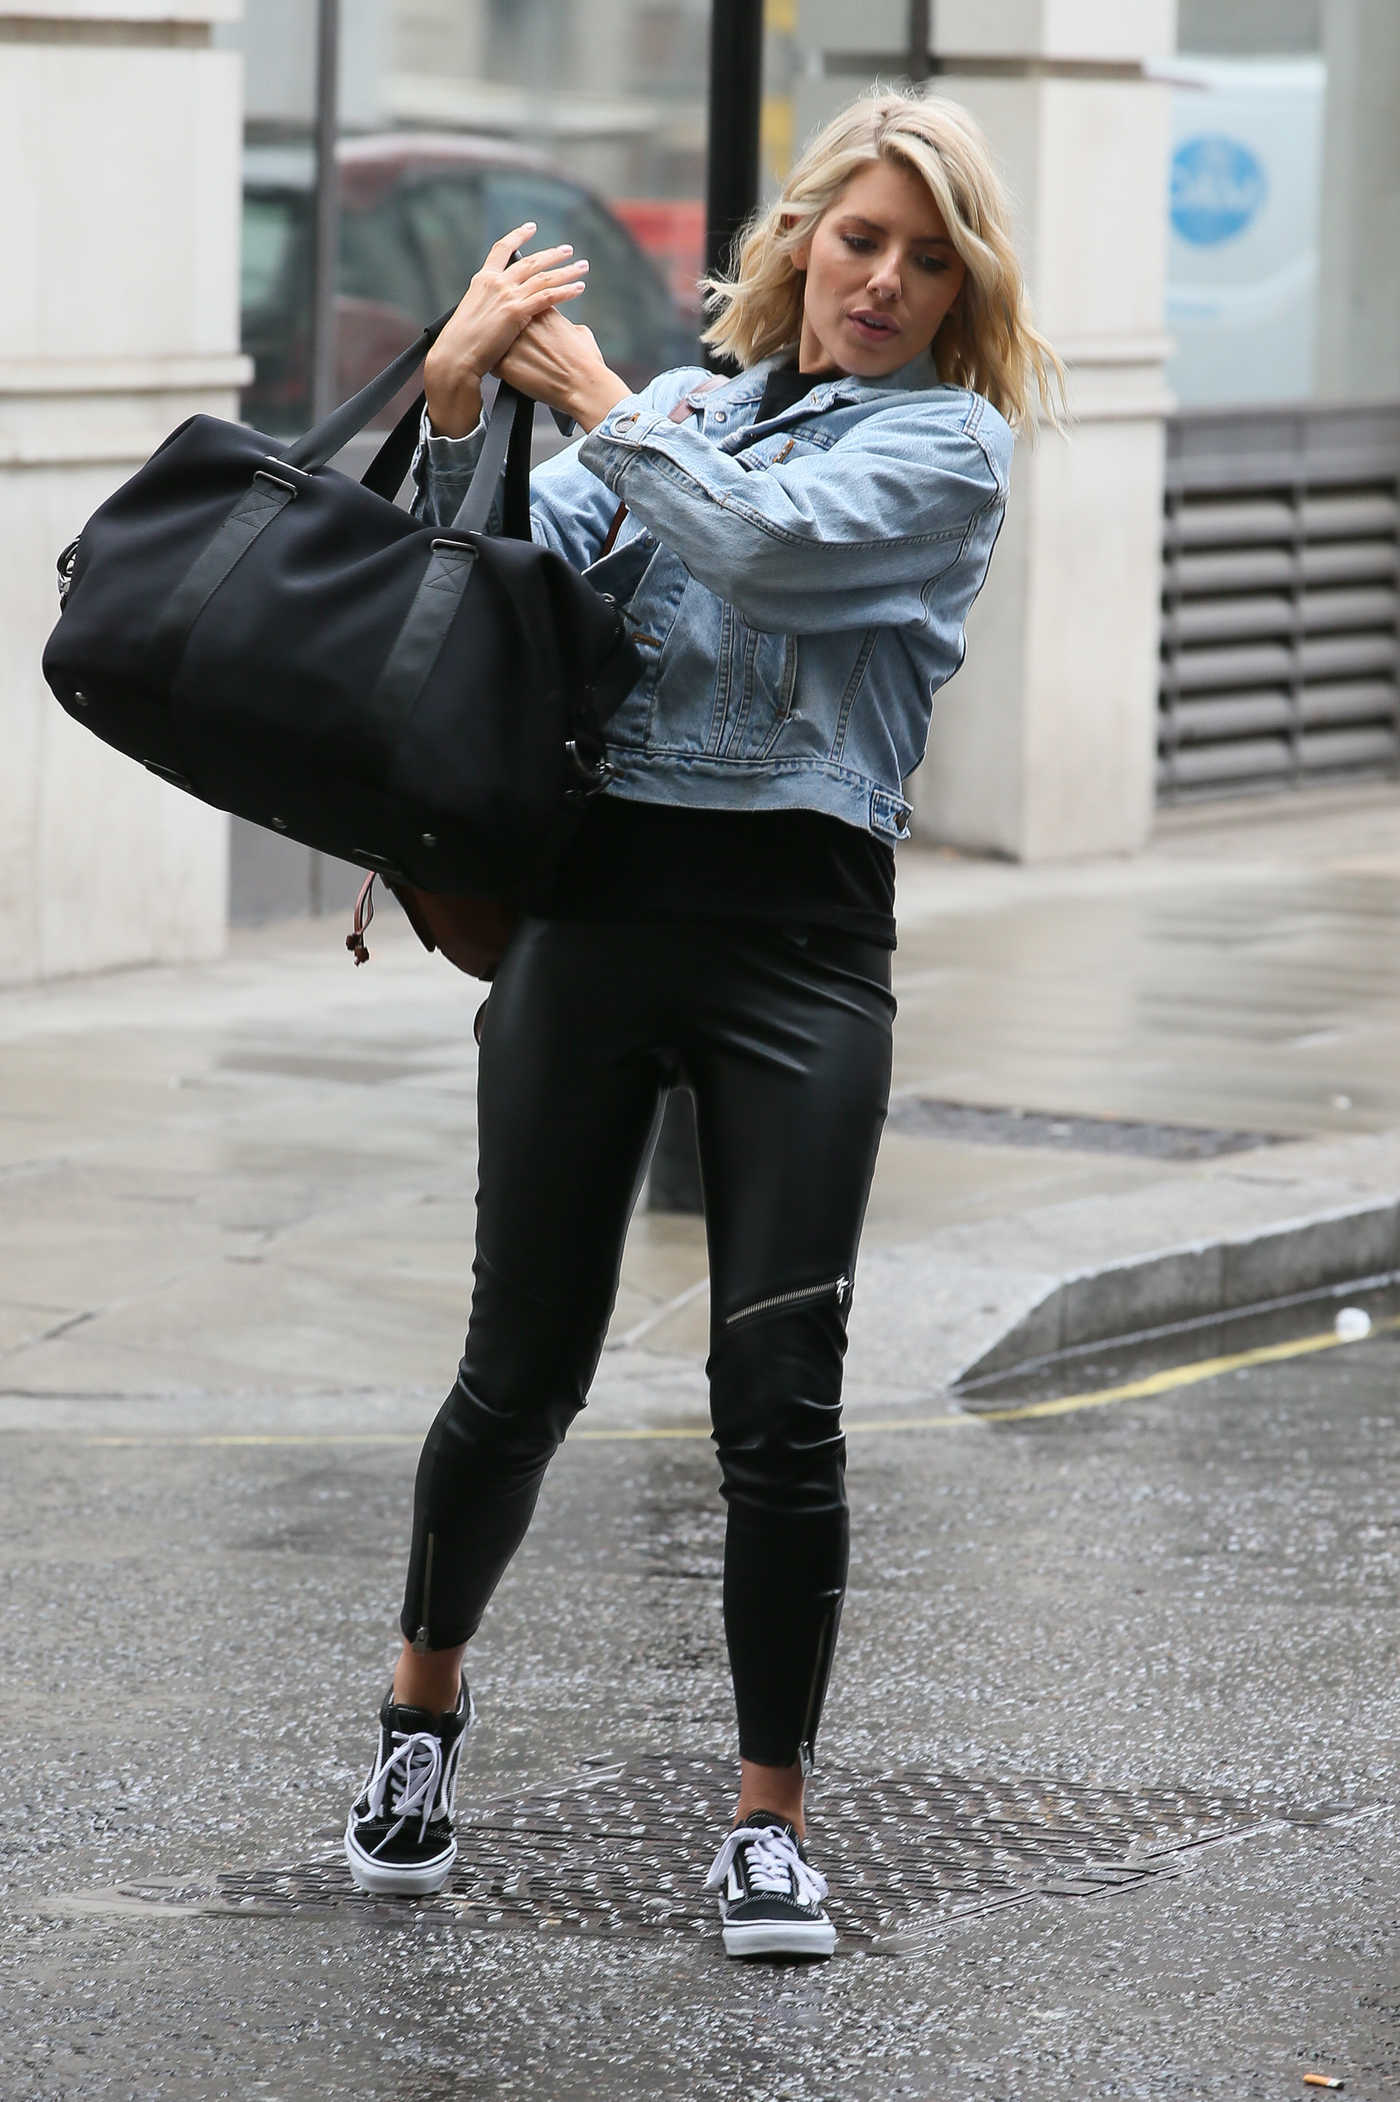 Mollie King in a Blue Denim Jacket Arrives at the BBC Radio 1 Studios in London 08/10/2018